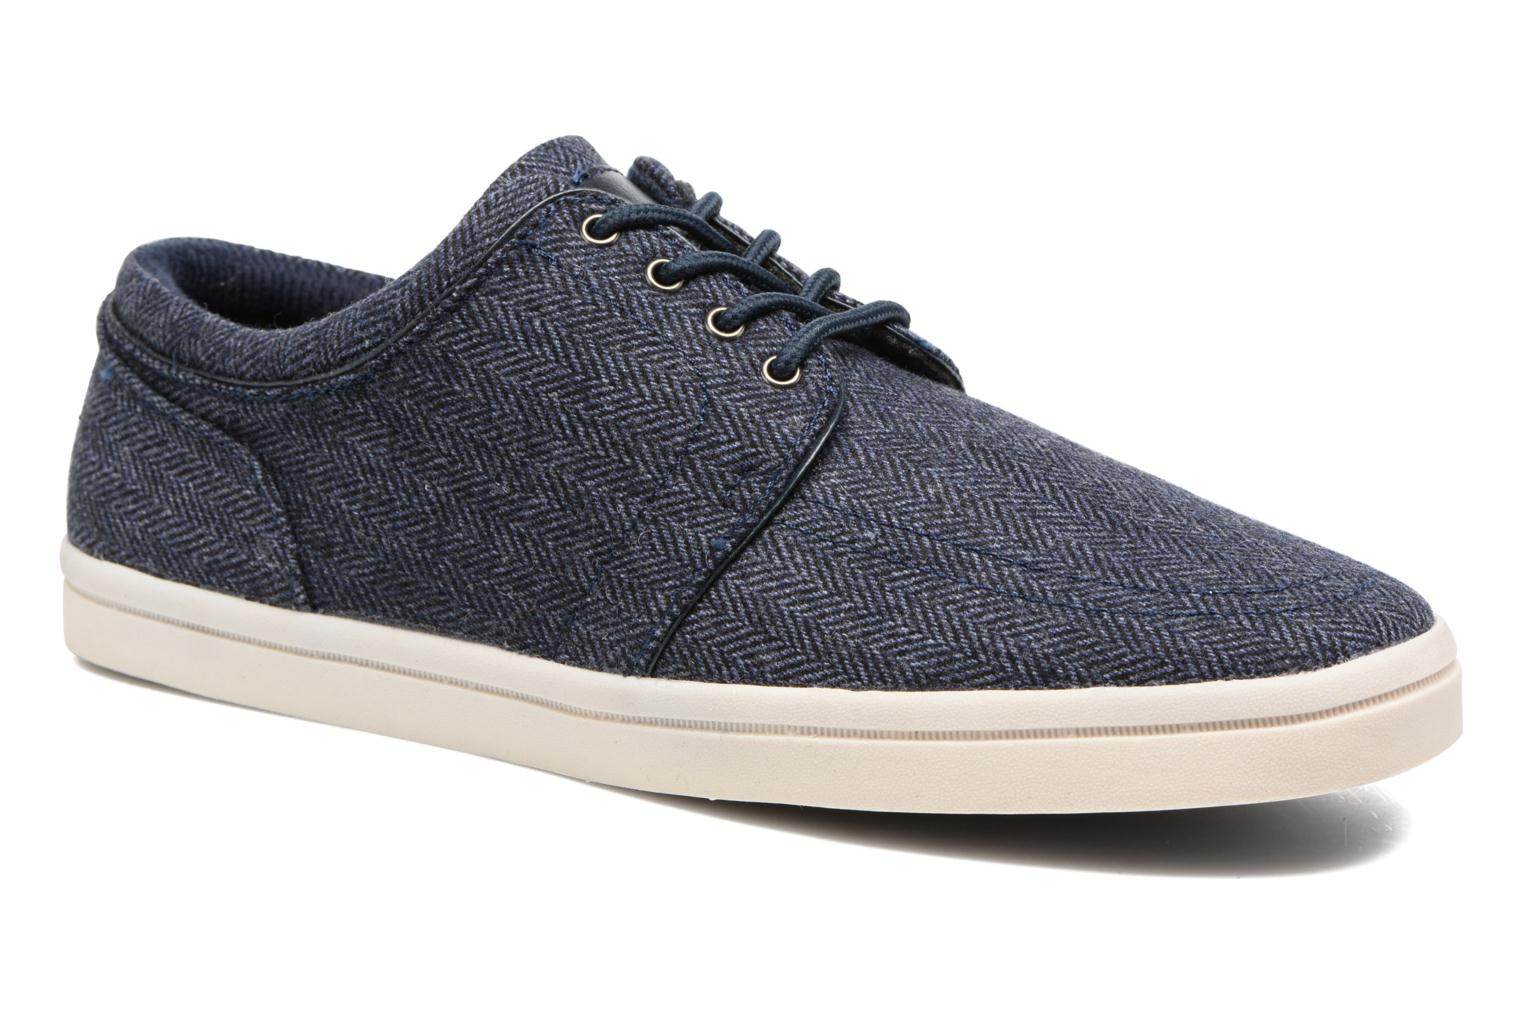 Marques Chaussure homme I Love Shoes homme SUPECOURT Navy